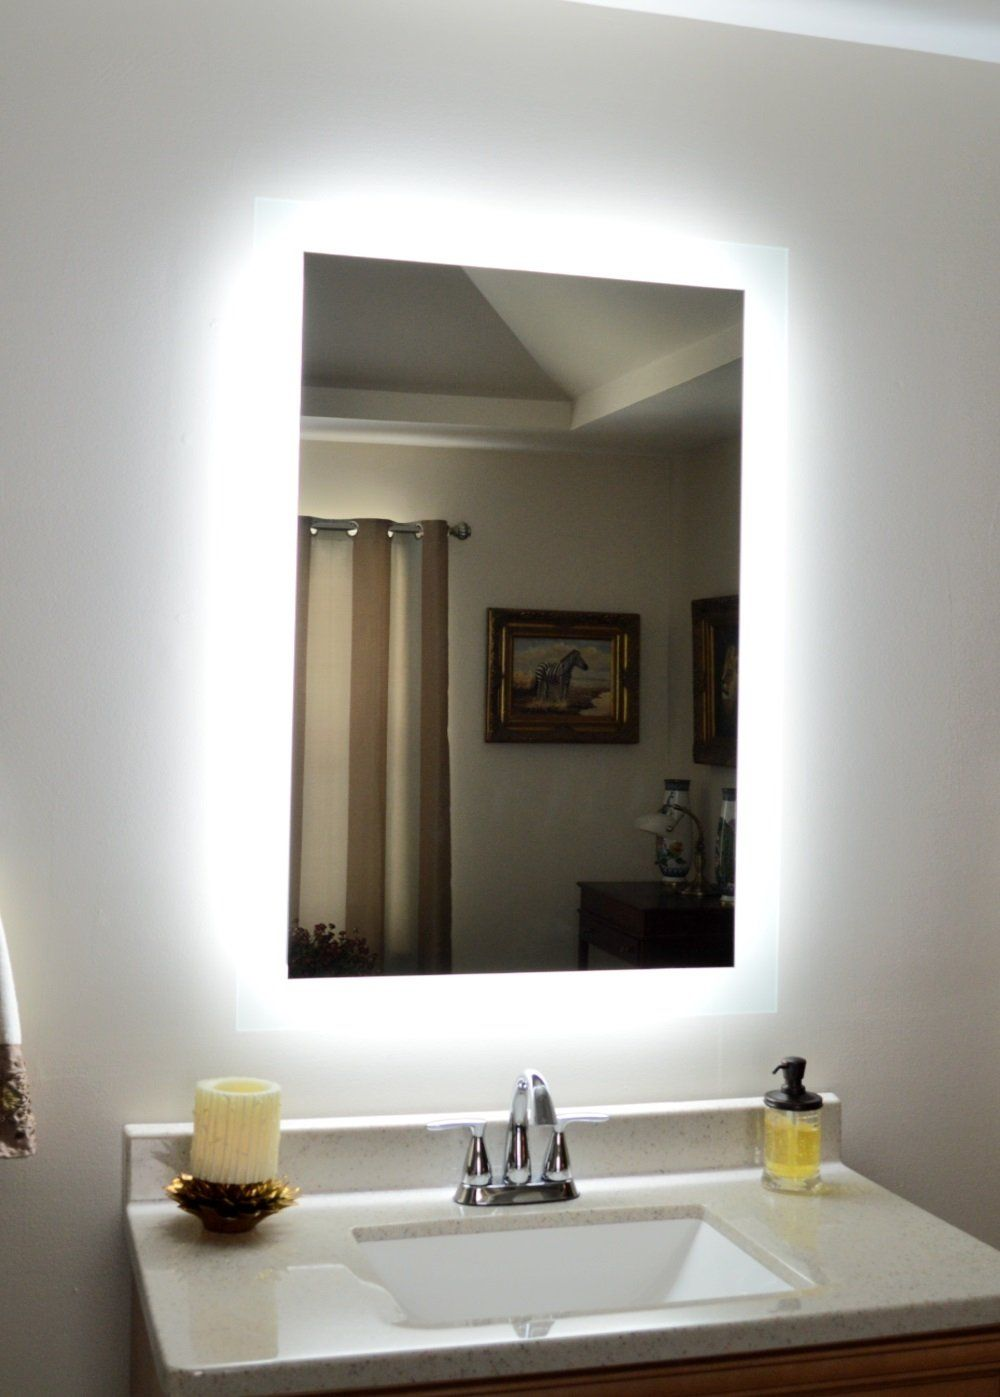 Side Lighted Led Bathroom Vanity Mirror 28 Wide X 44 Tall Rectangular Wall Mounted Bathroom Decor Rustic Bathroom Mirrors Bath Mirror